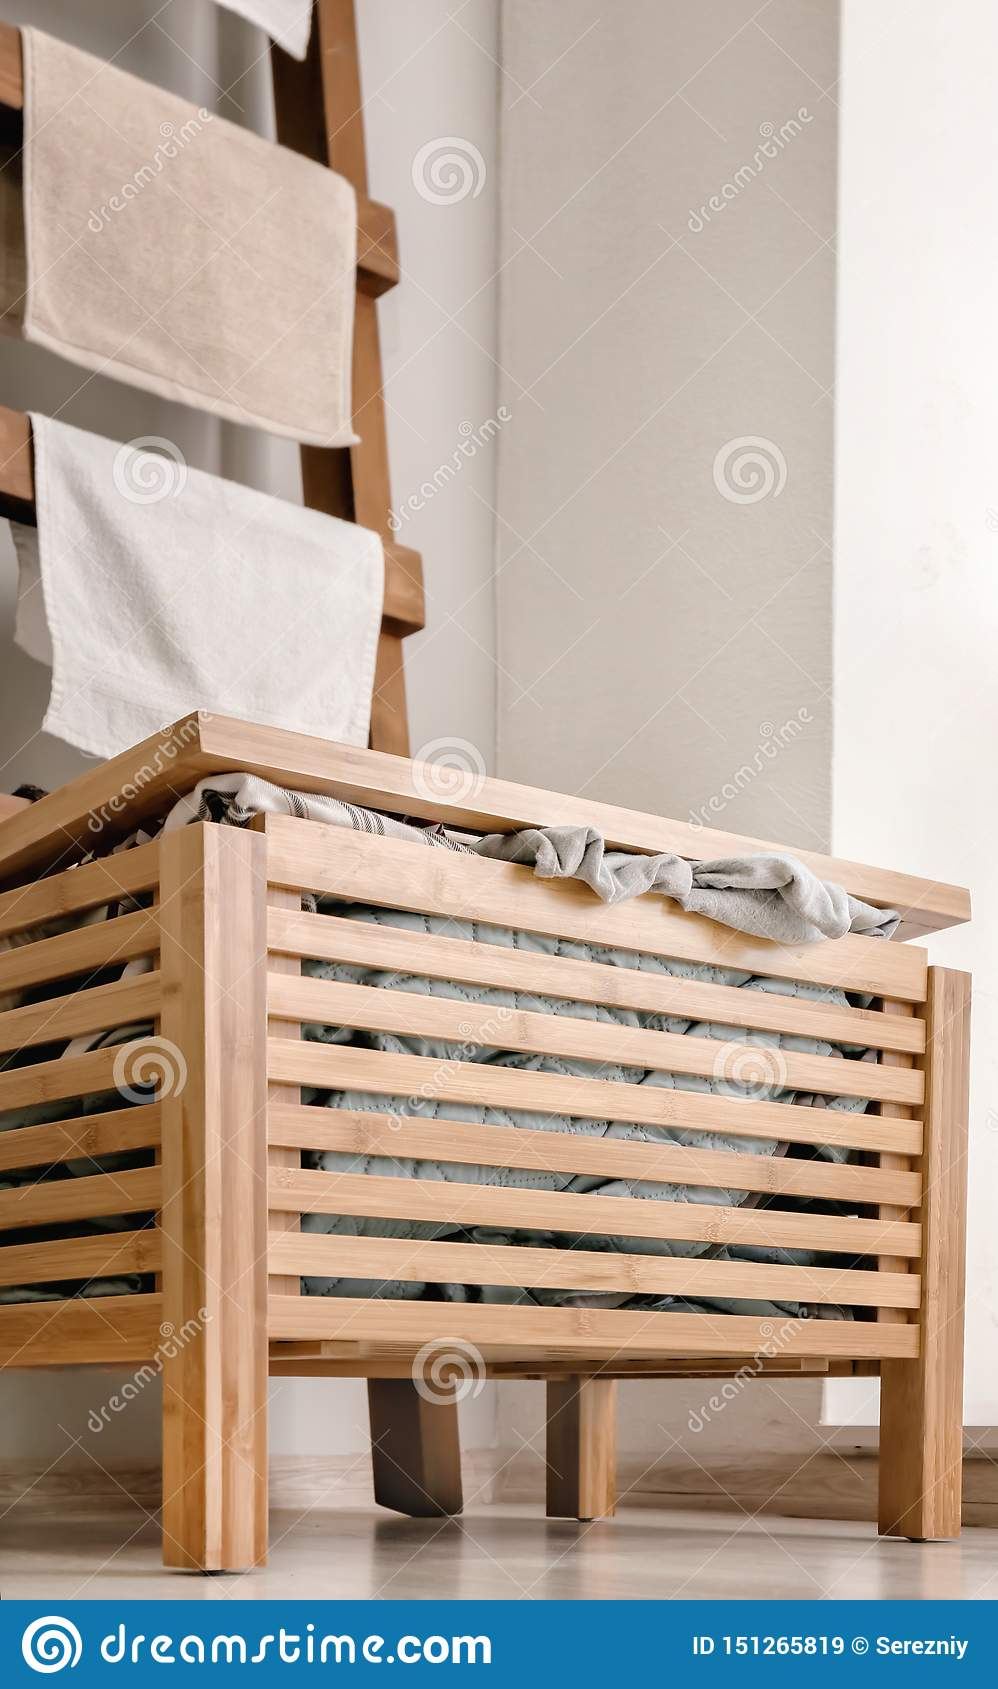 Wooden Box With Dirty Laundry In Bathroom Stock Image - Image of laundry, household: 151265819